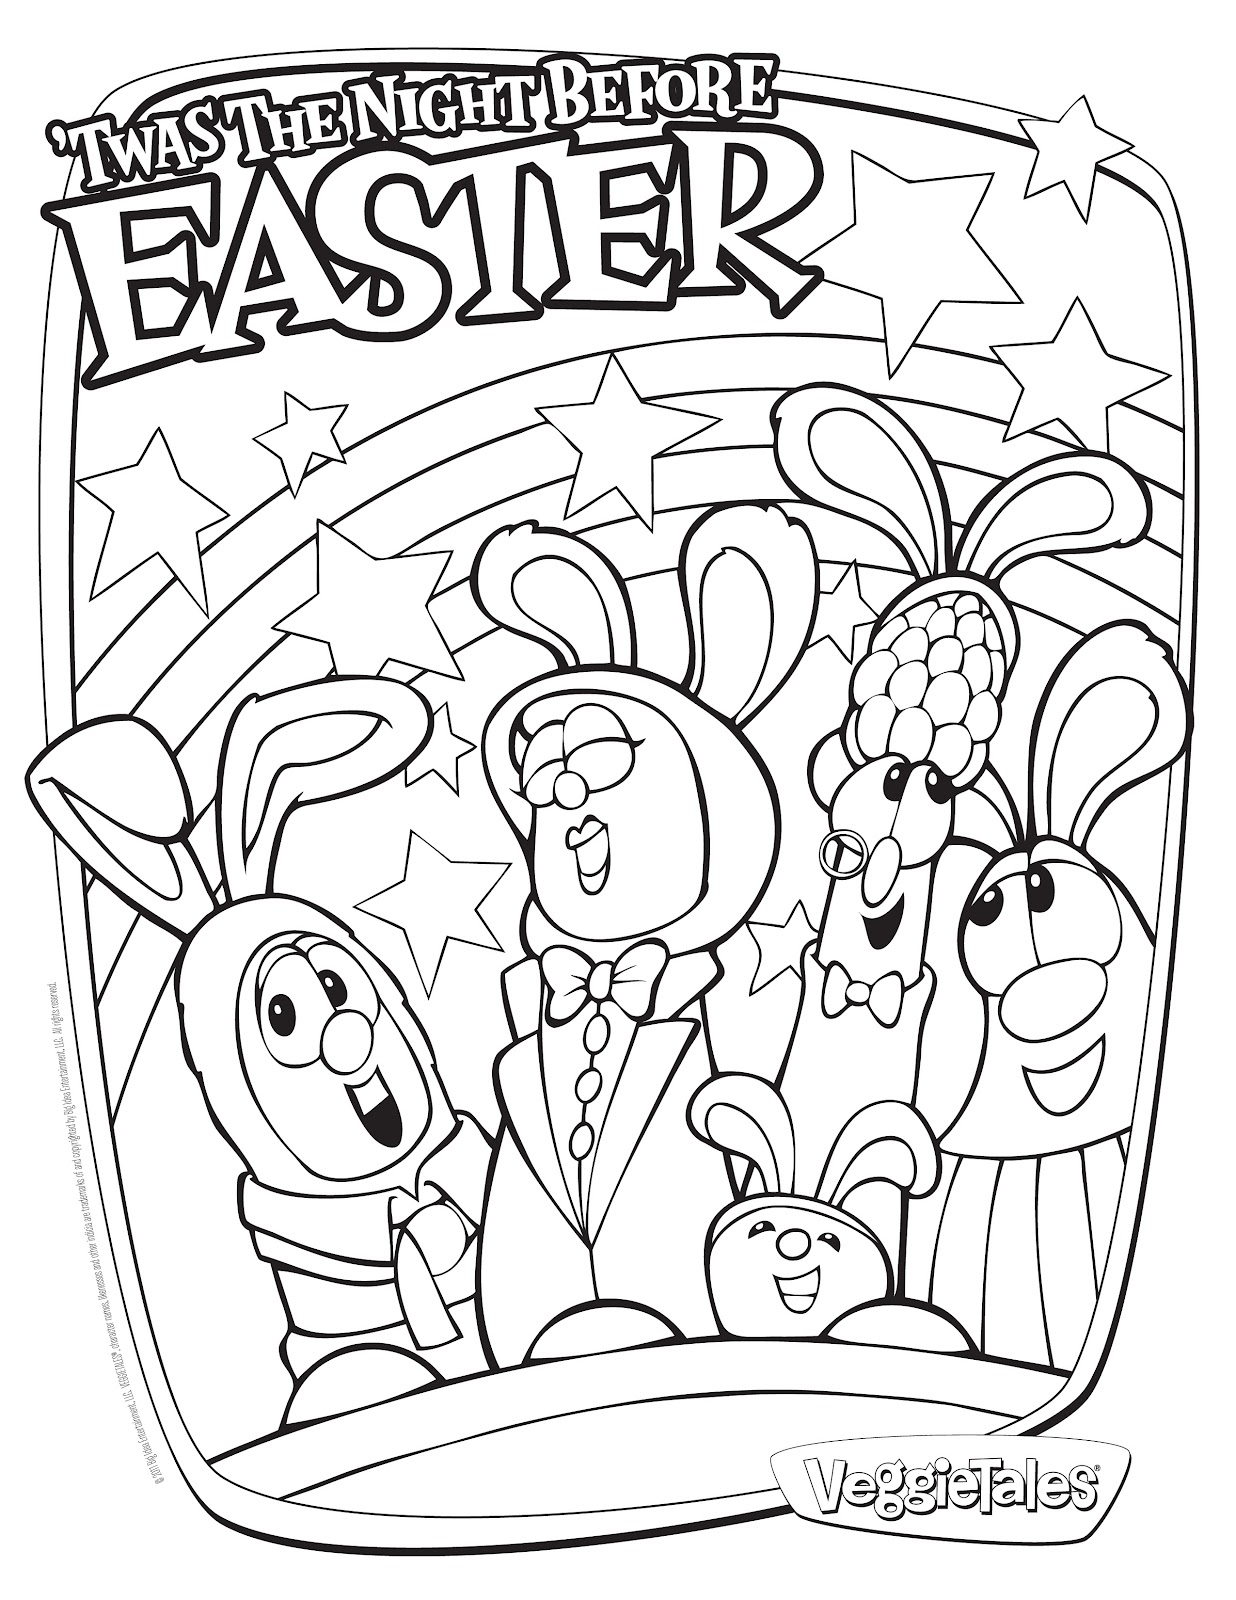 Religious Coloring Pages For Kids Awesome Easter Religious Coloring Pages Color Bros Fun Time